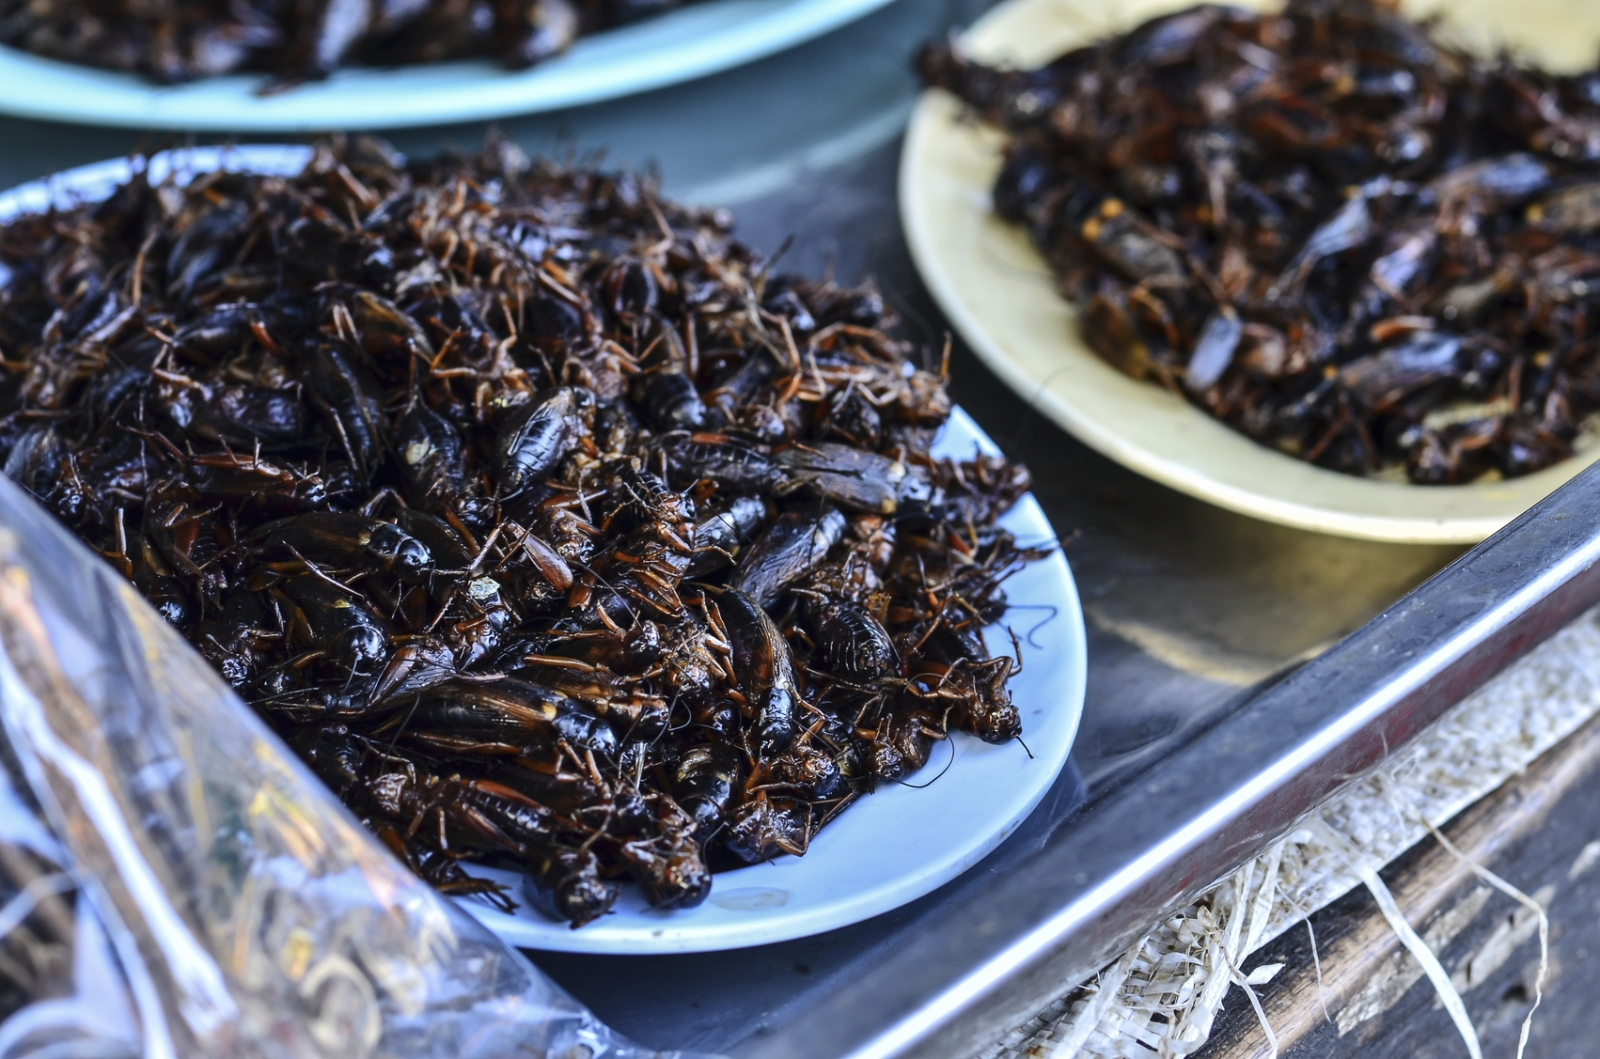 cockroach milk superfood